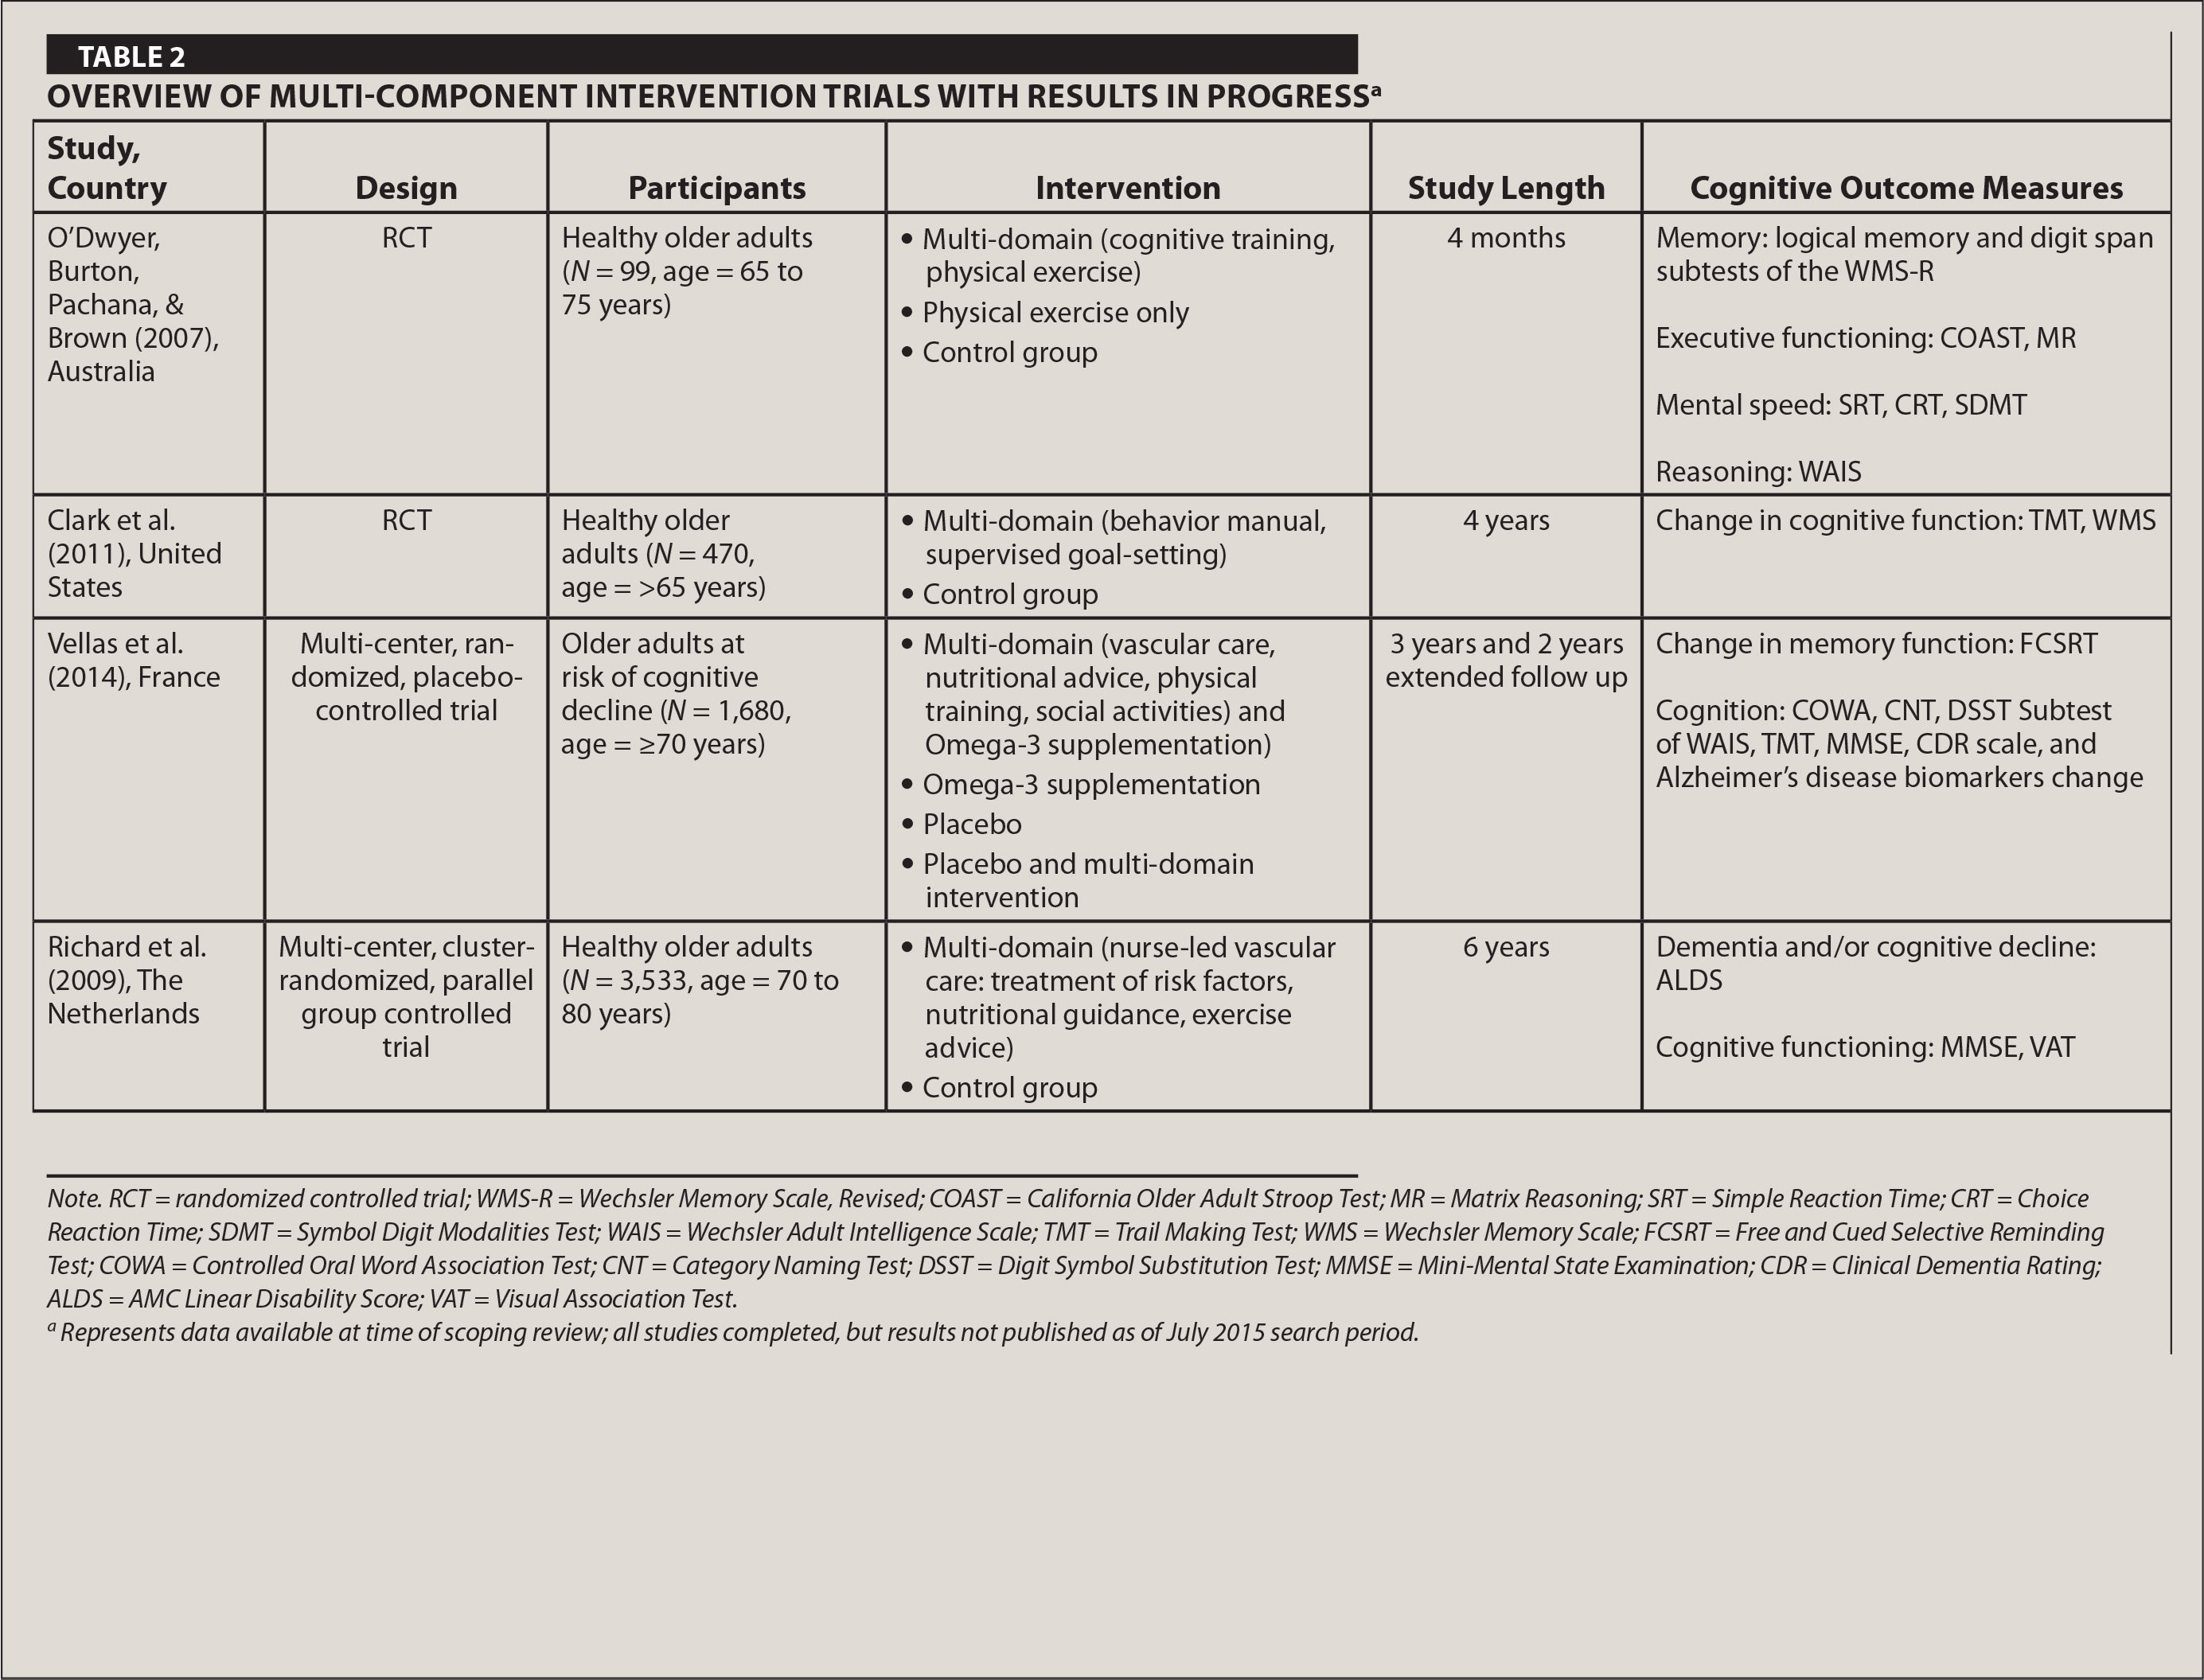 Overview of Multi-Component Intervention Trials With Results in Progressa